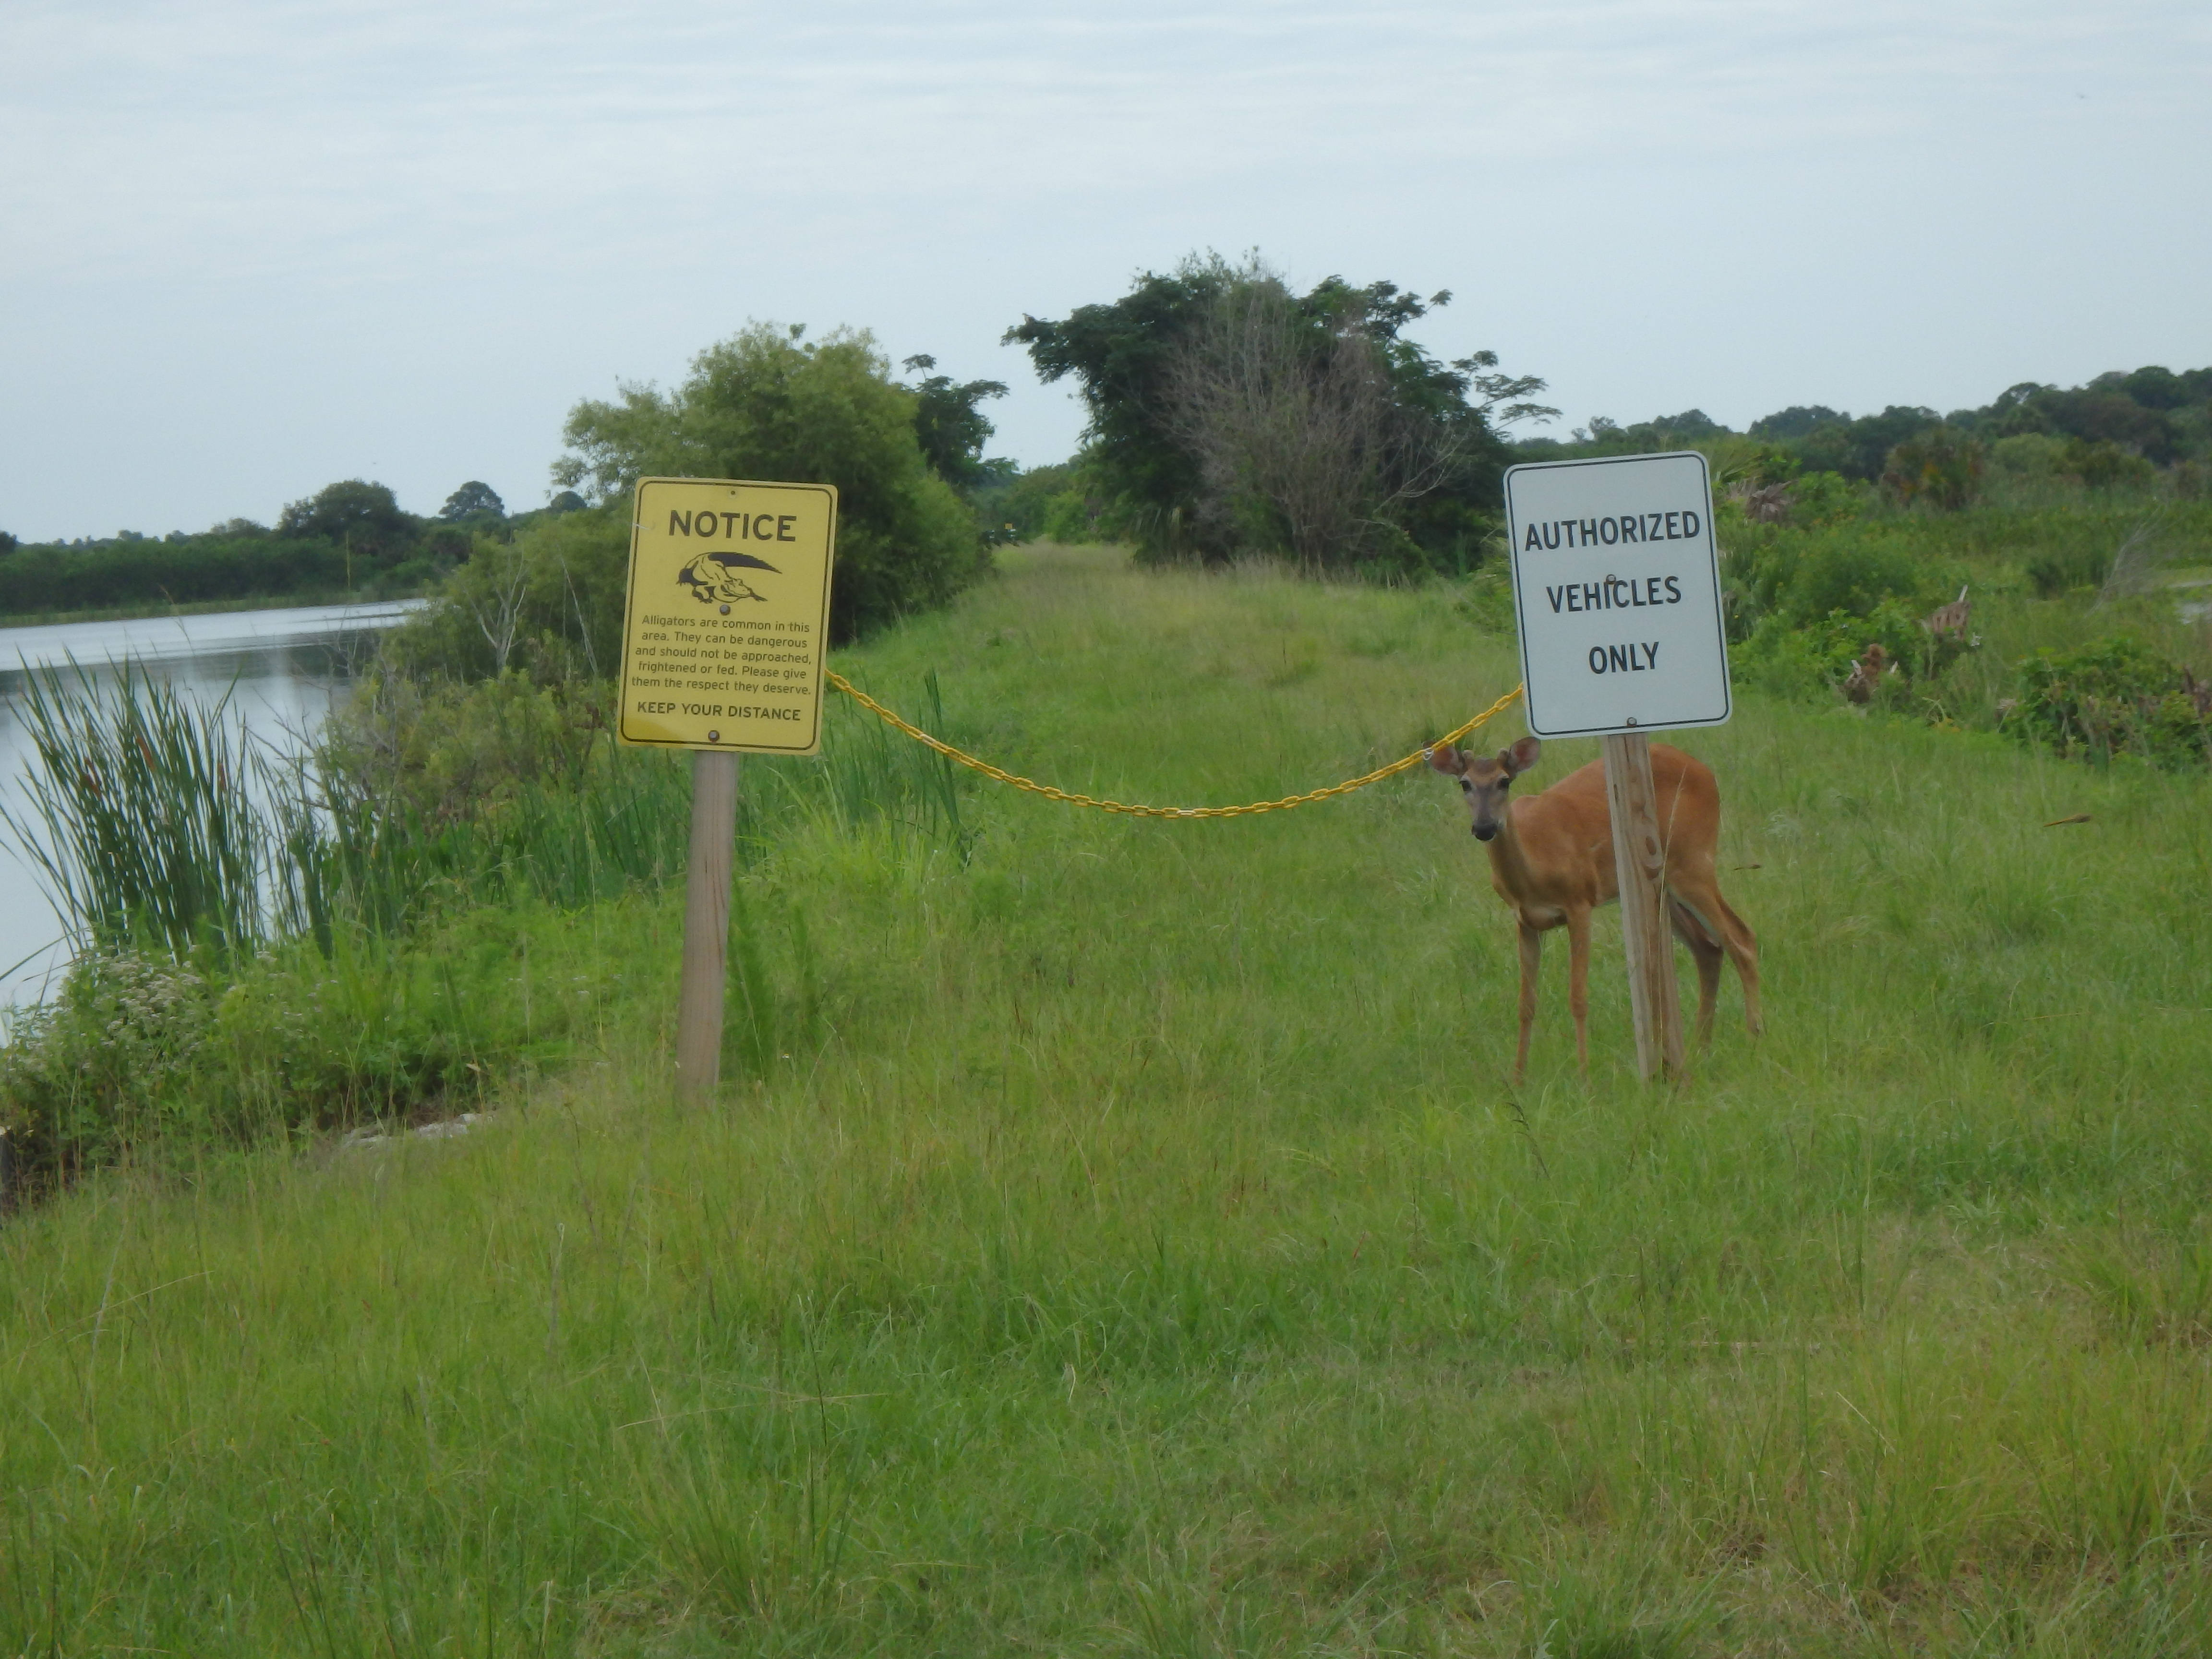 Deer in Florida's Wetlands; Titusville, FL; 2015